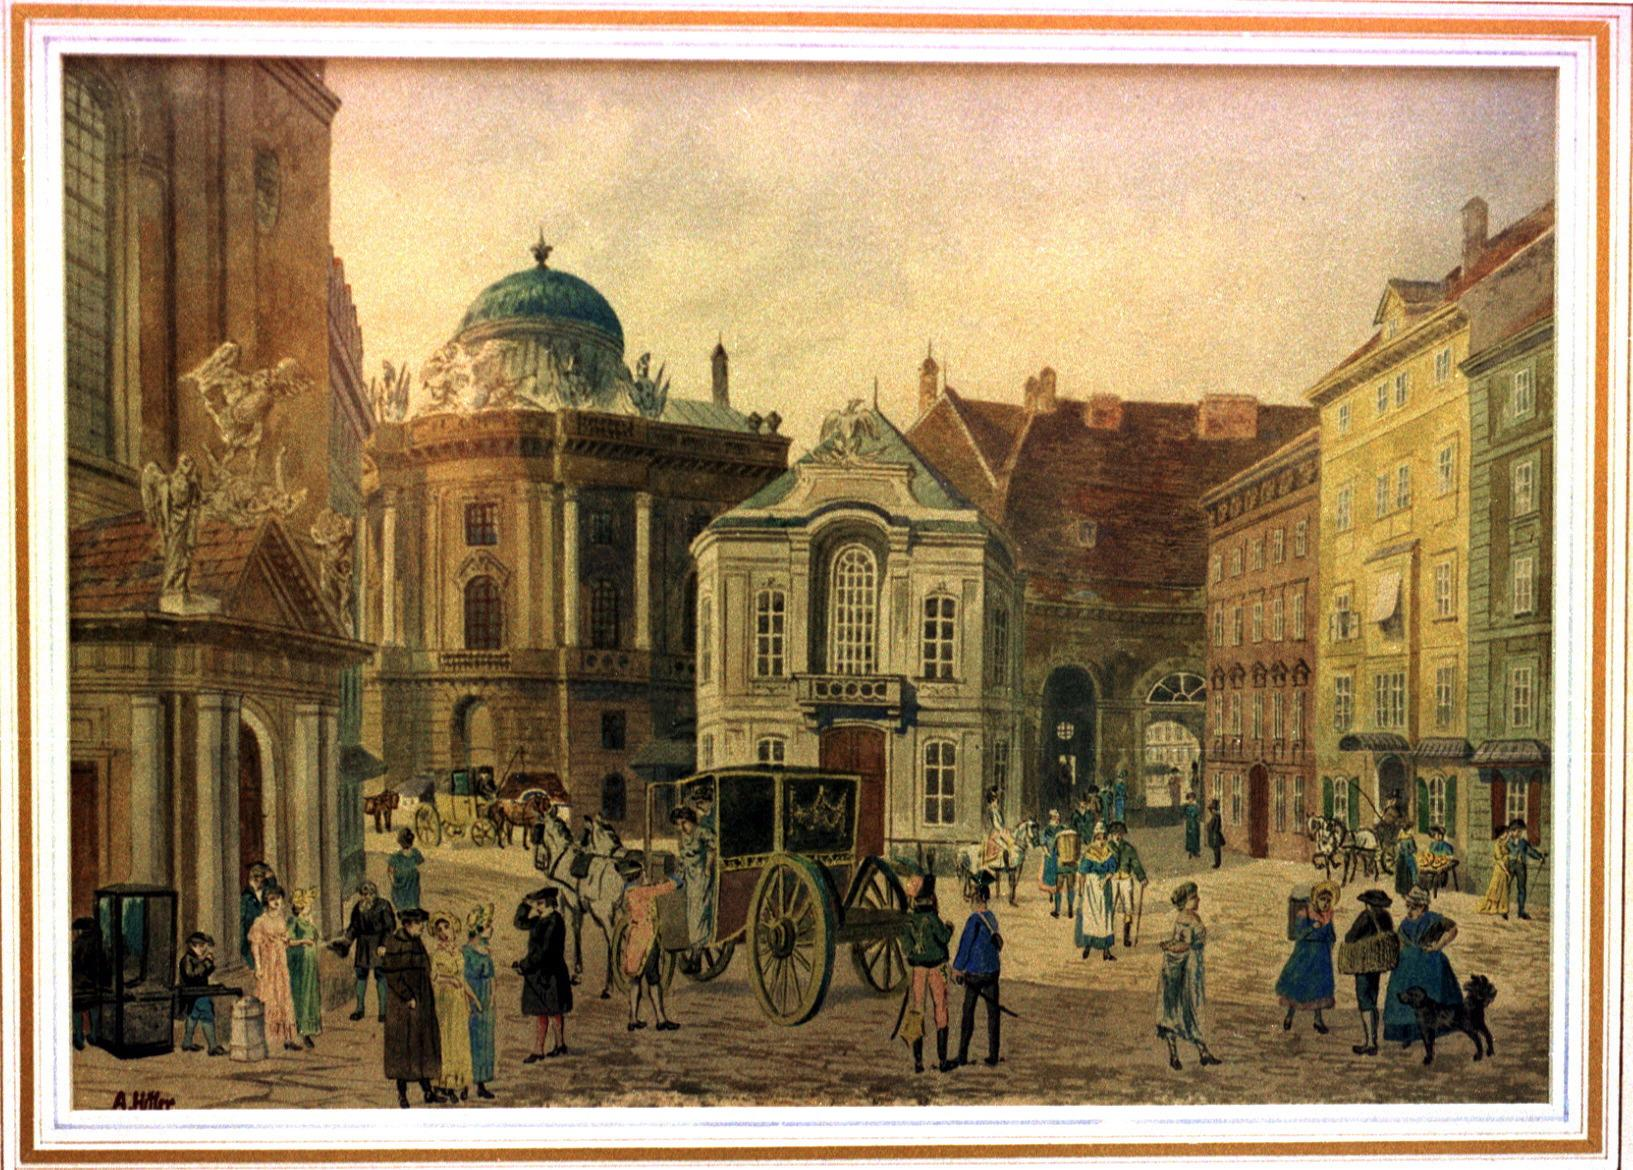 One of the two water-color paintings attributed to Adolf Hitler